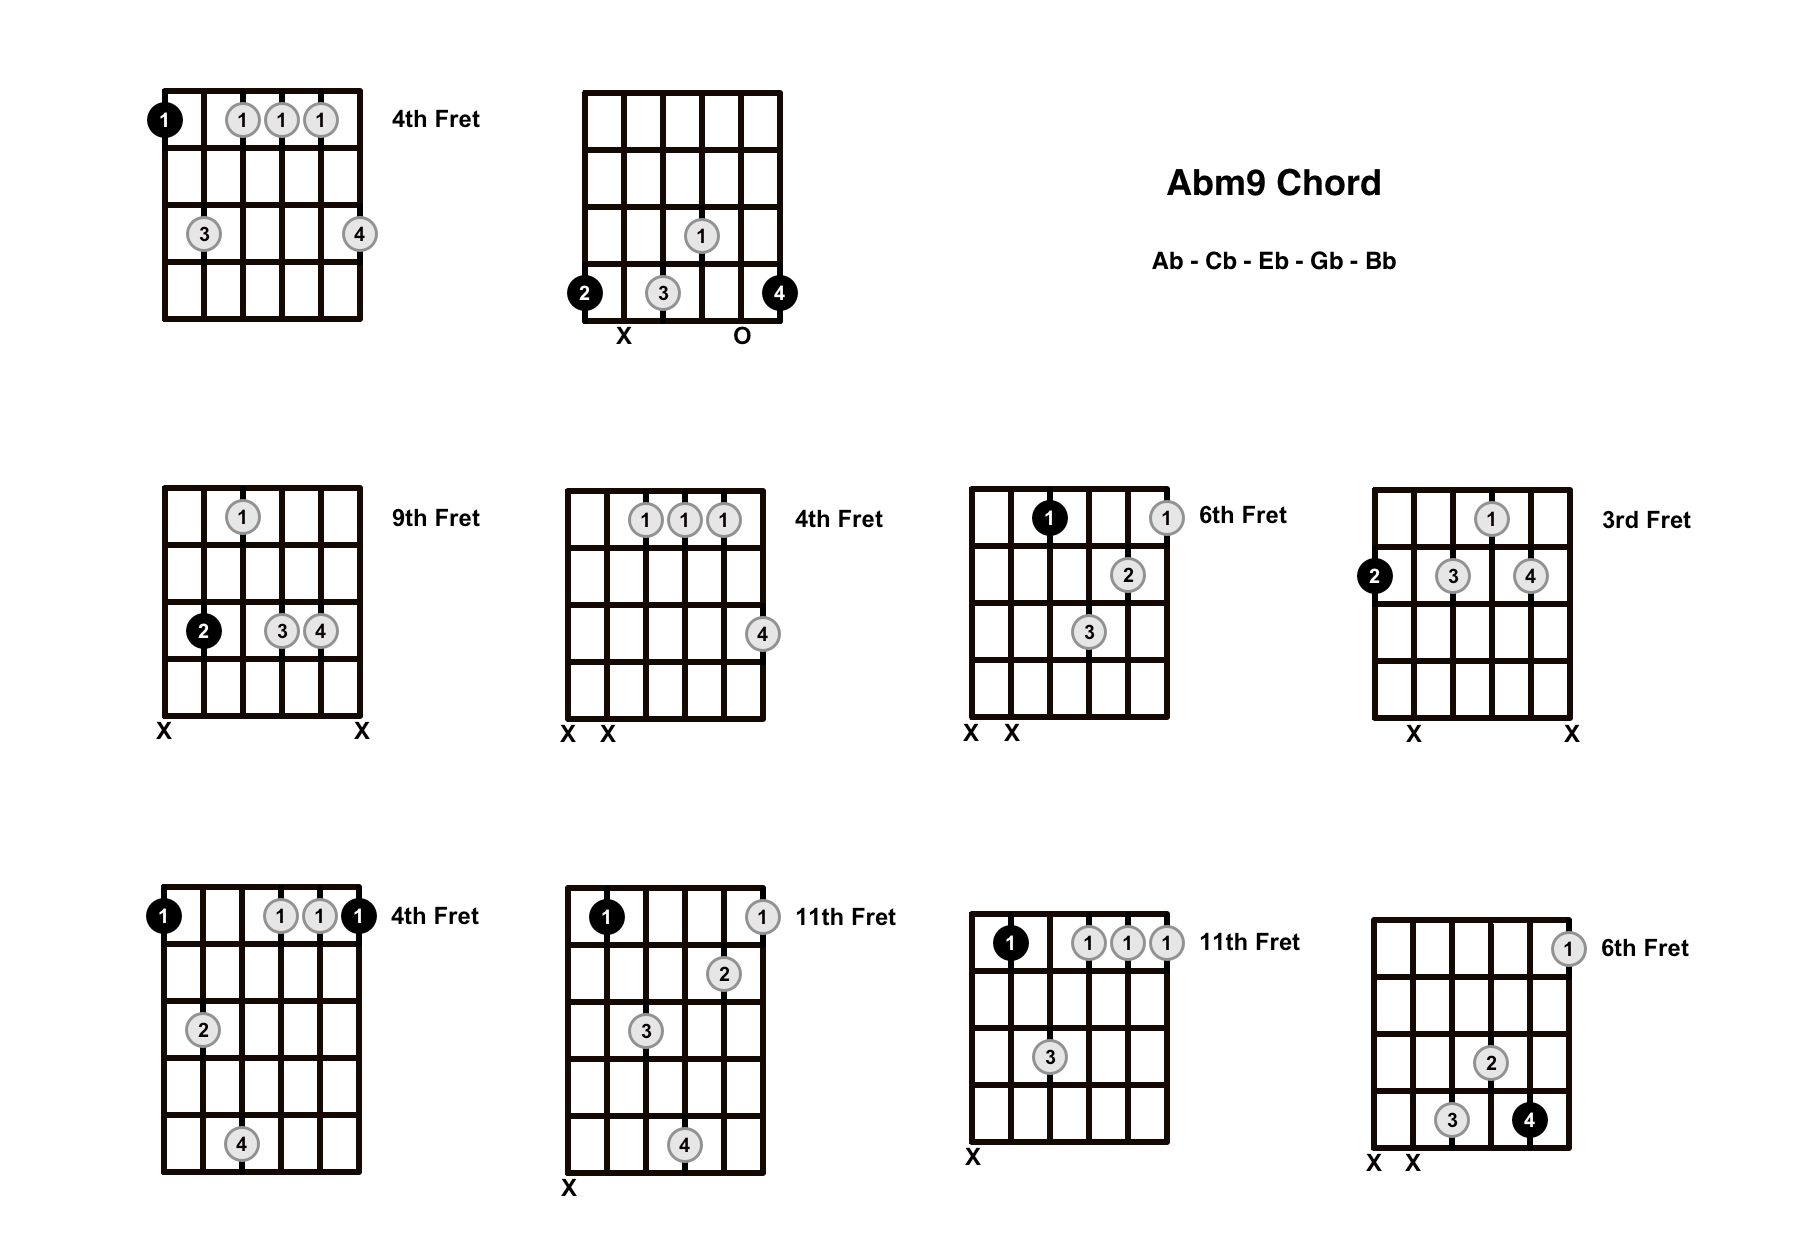 Abm9 Chord On The Guitar (A Flat Minor 9) – Diagrams, Finger Positions and Theory